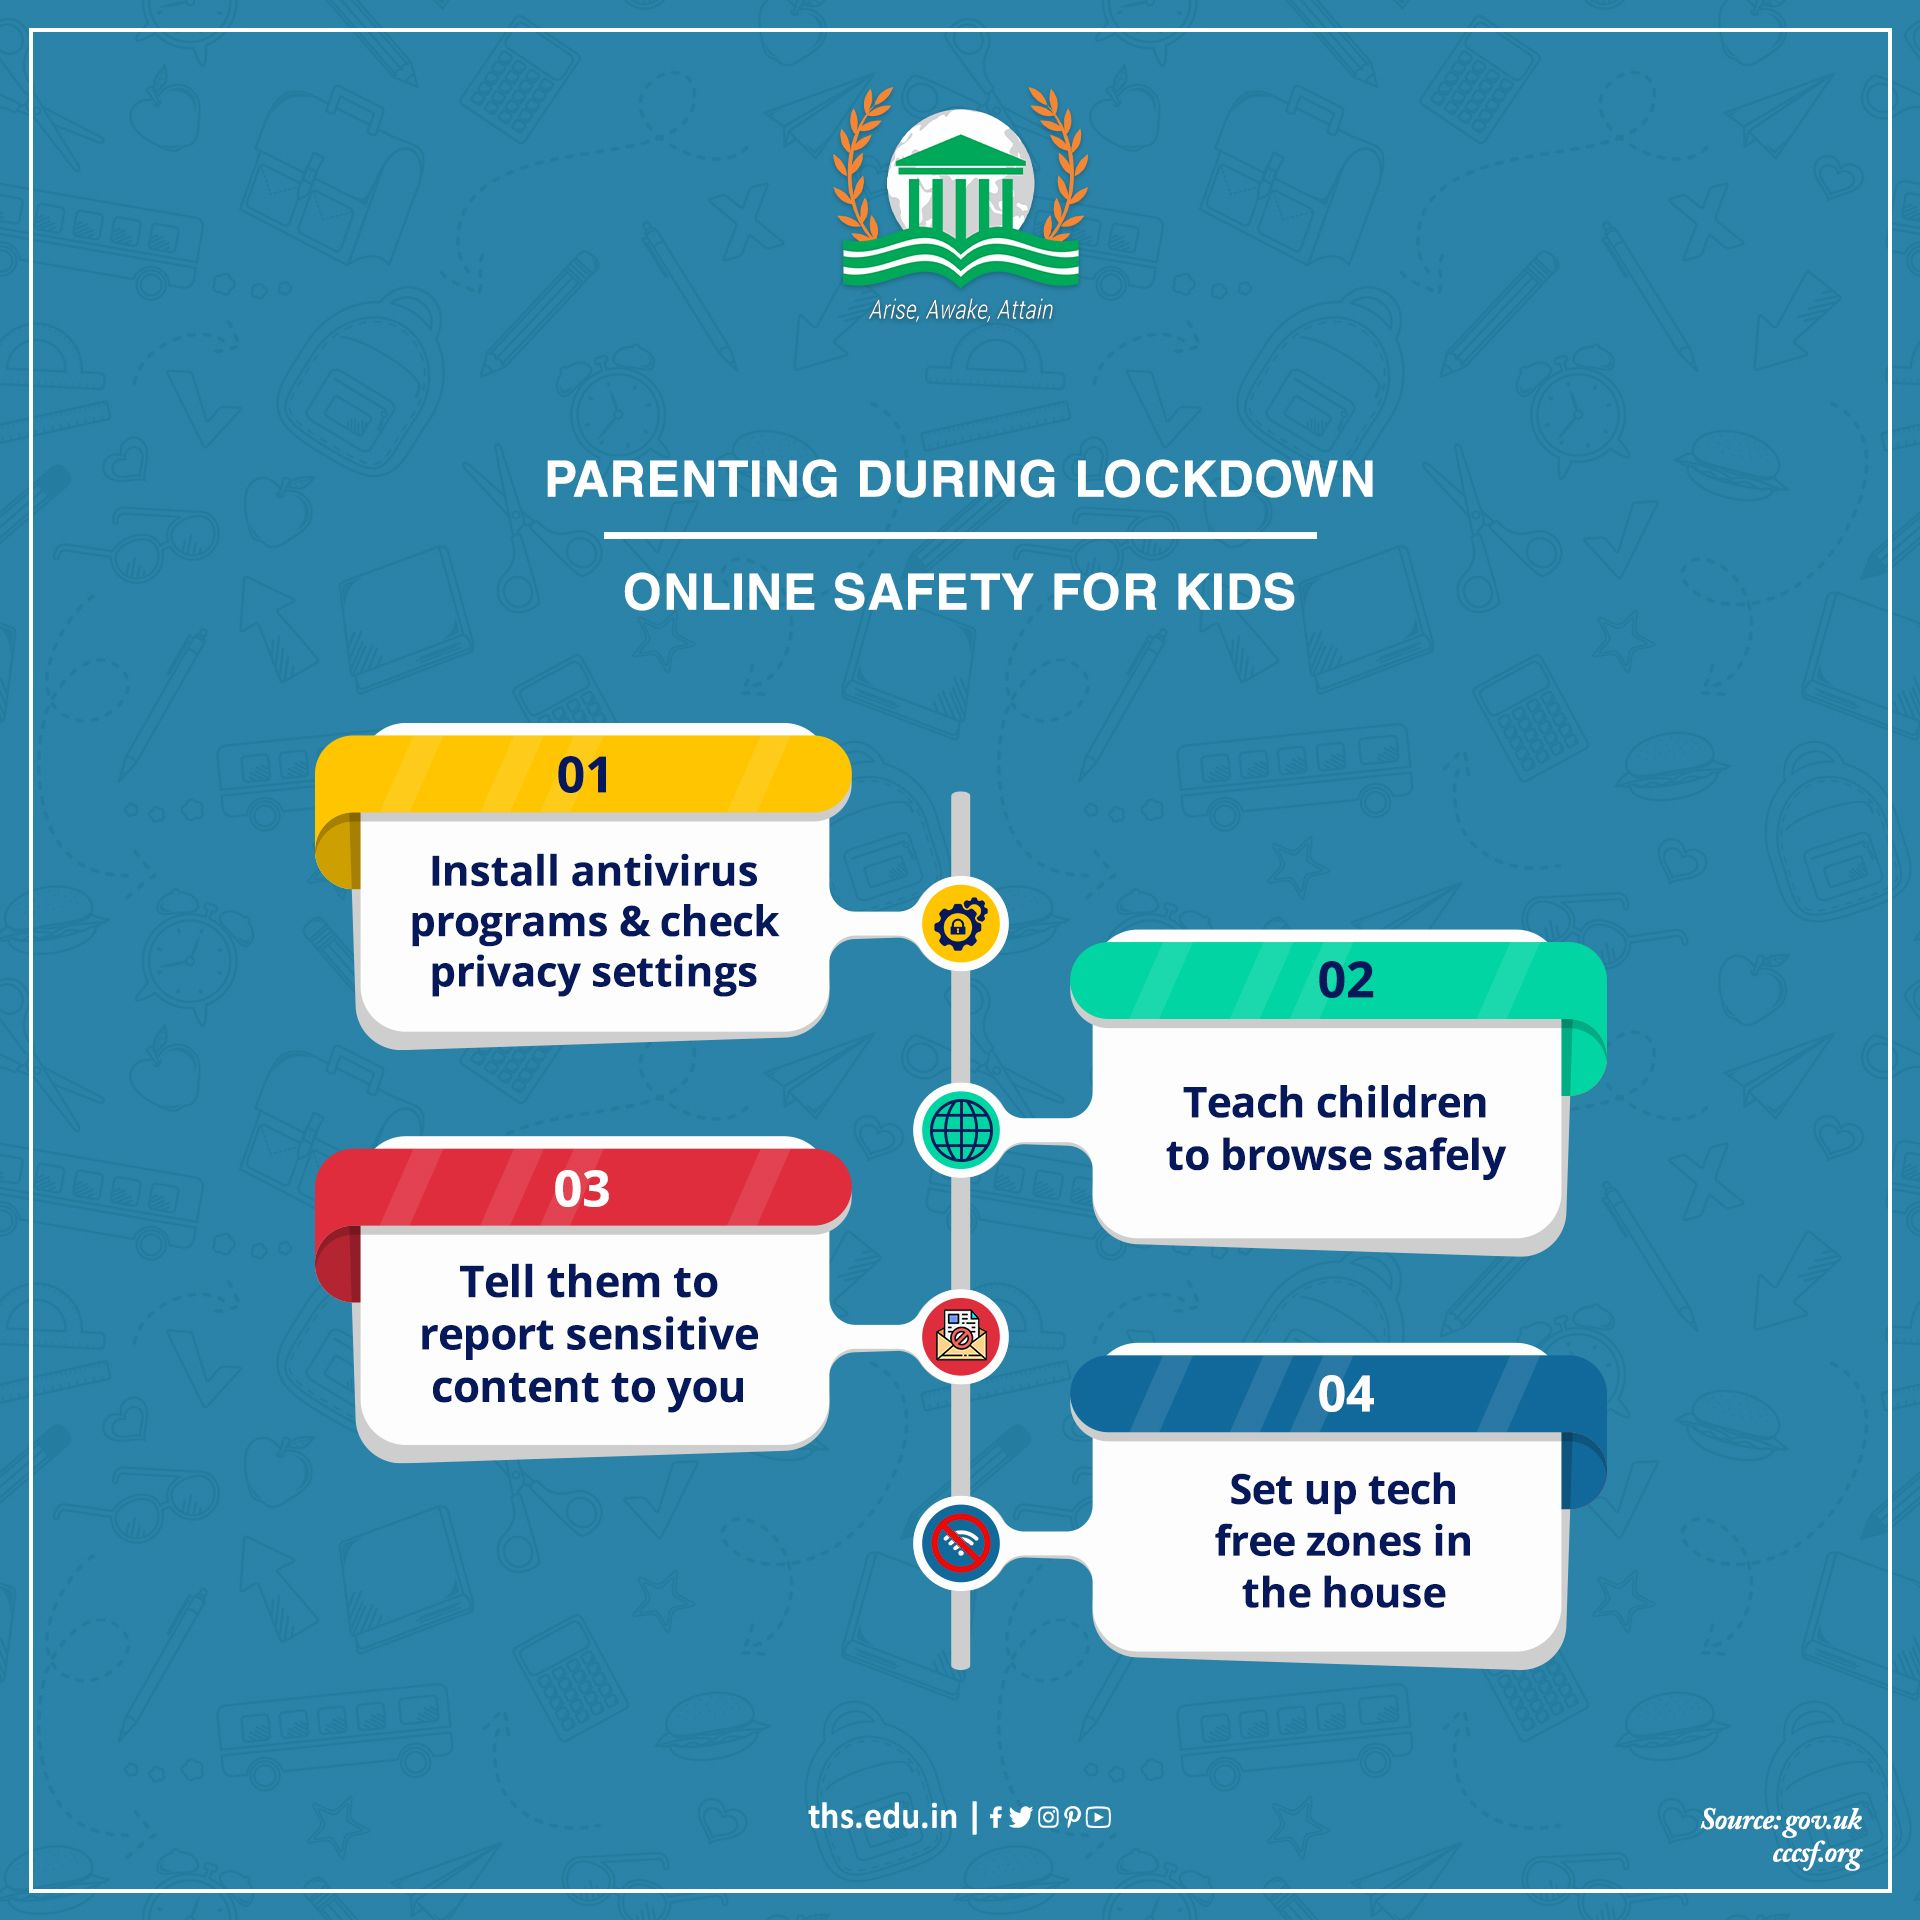 Ensure your kids safety with these online safety tips